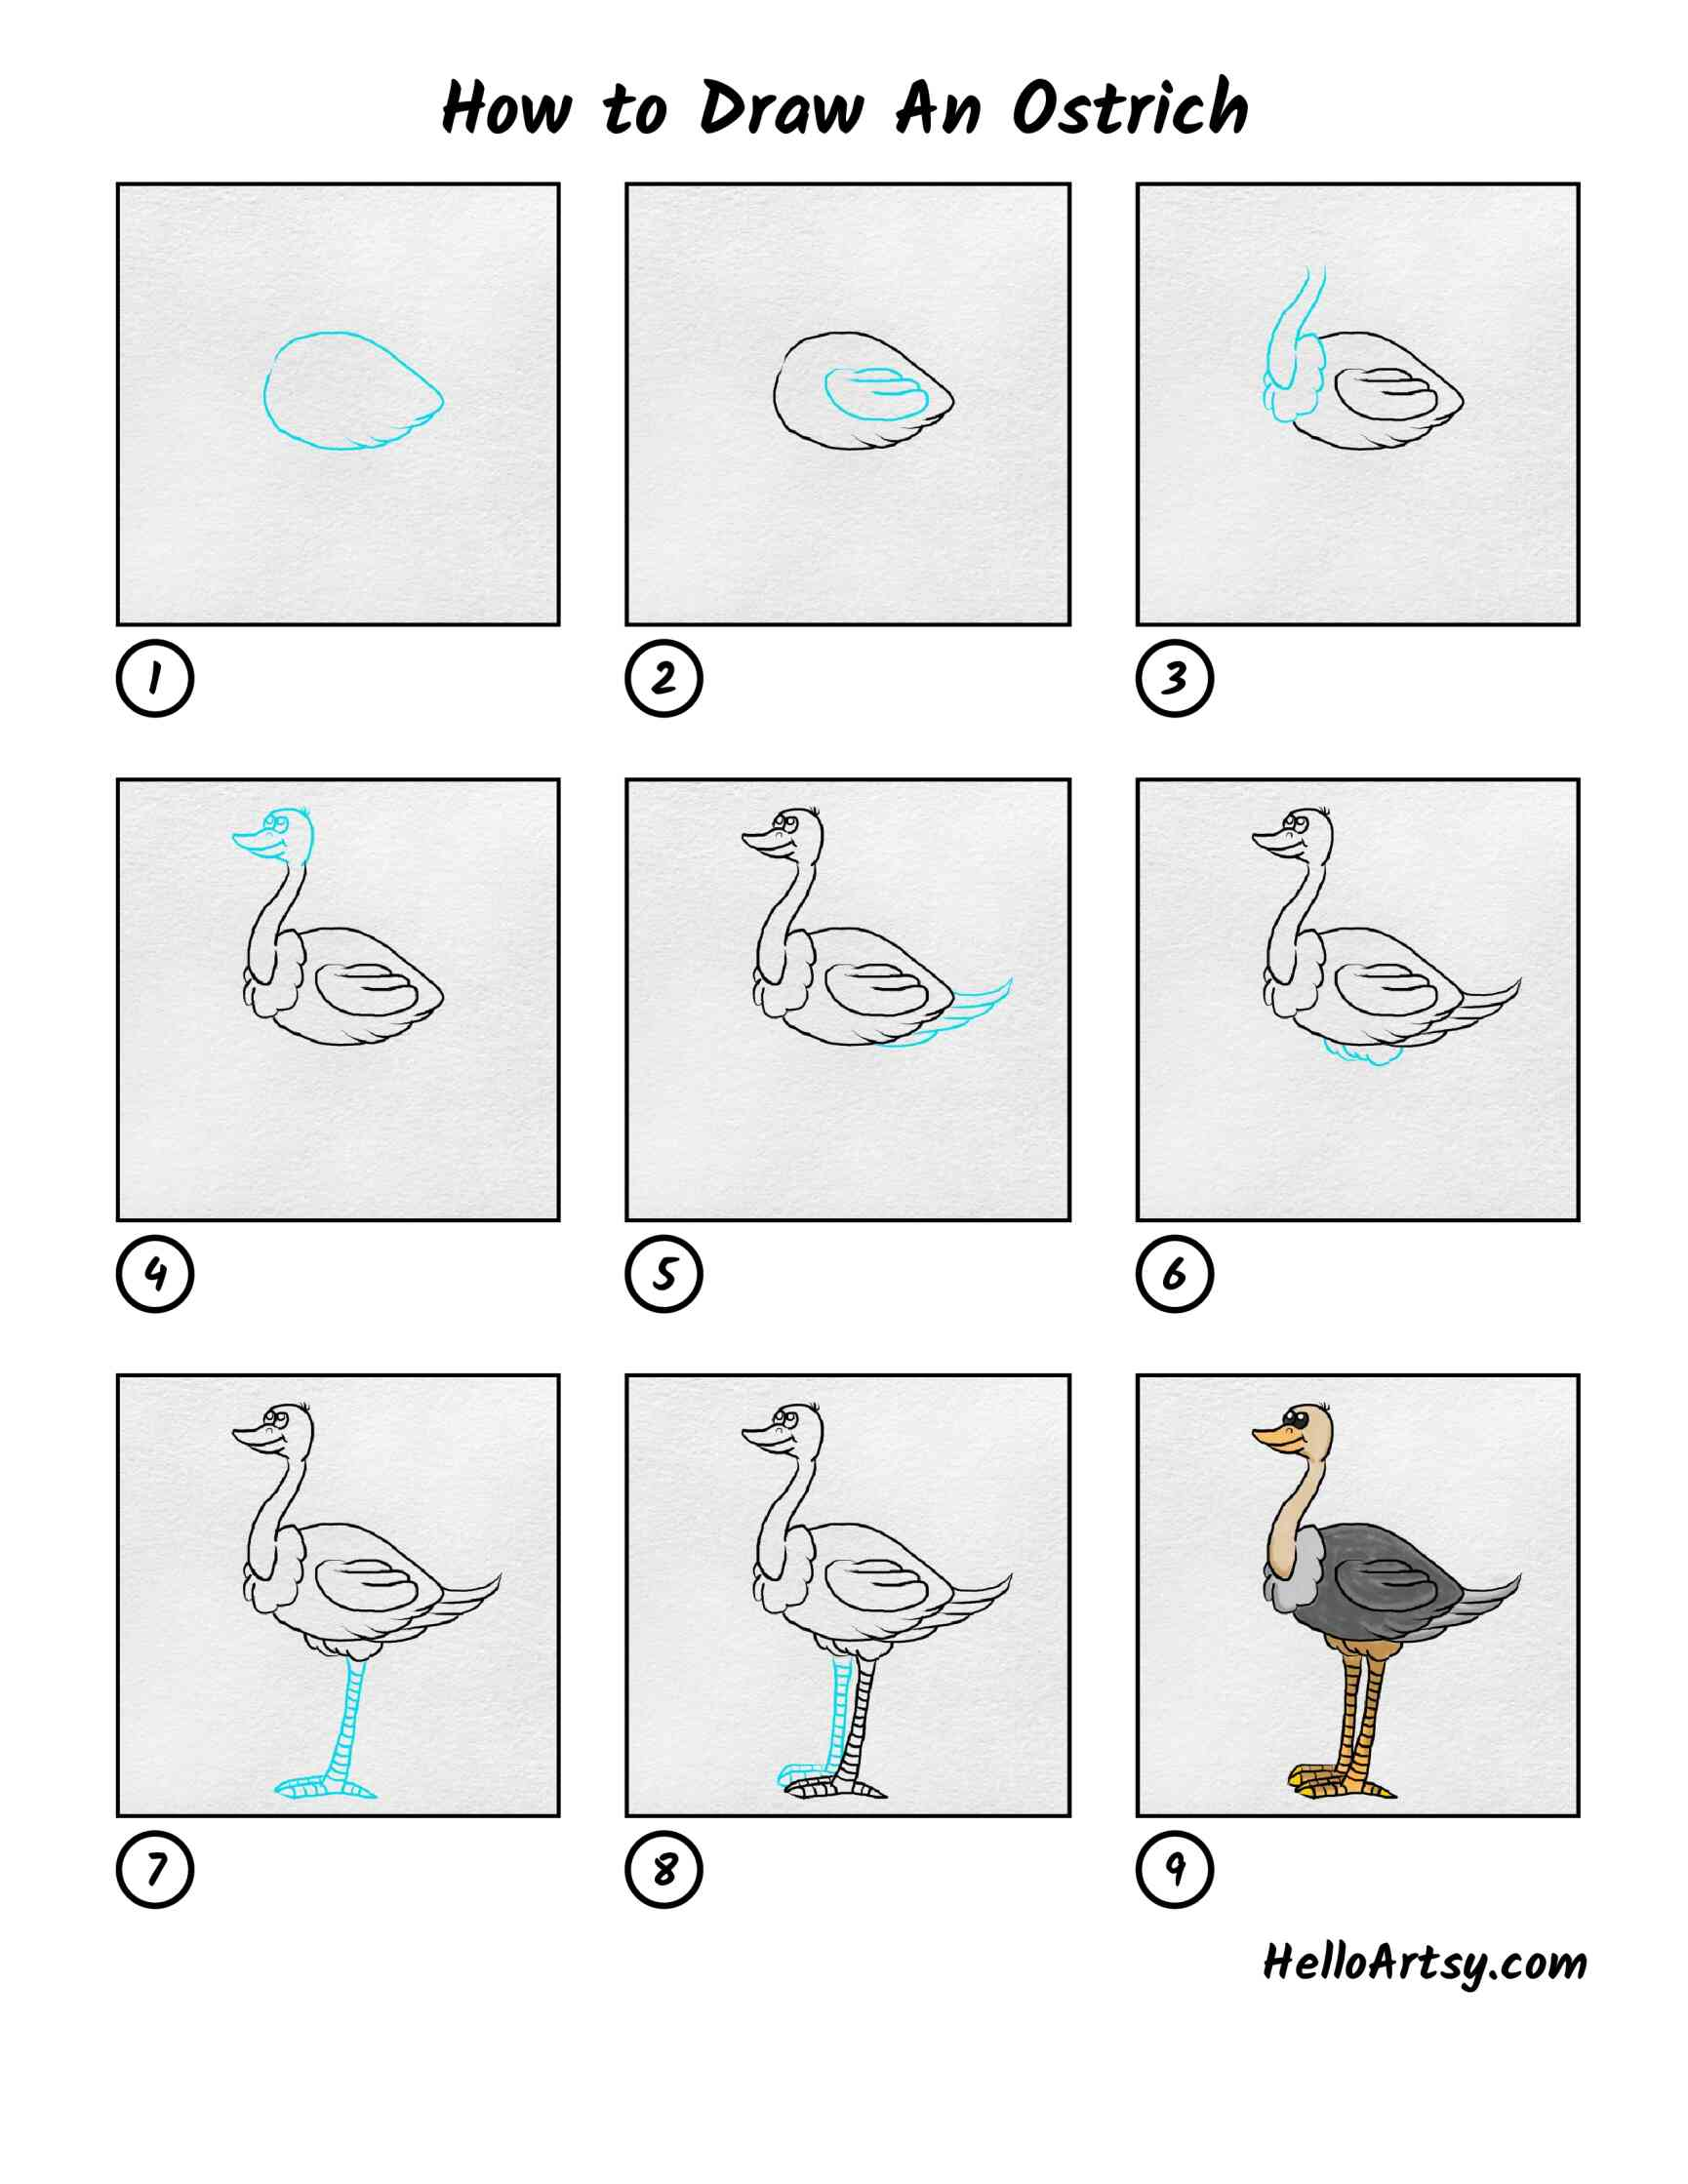 How To Draw An Ostrich: All Steps